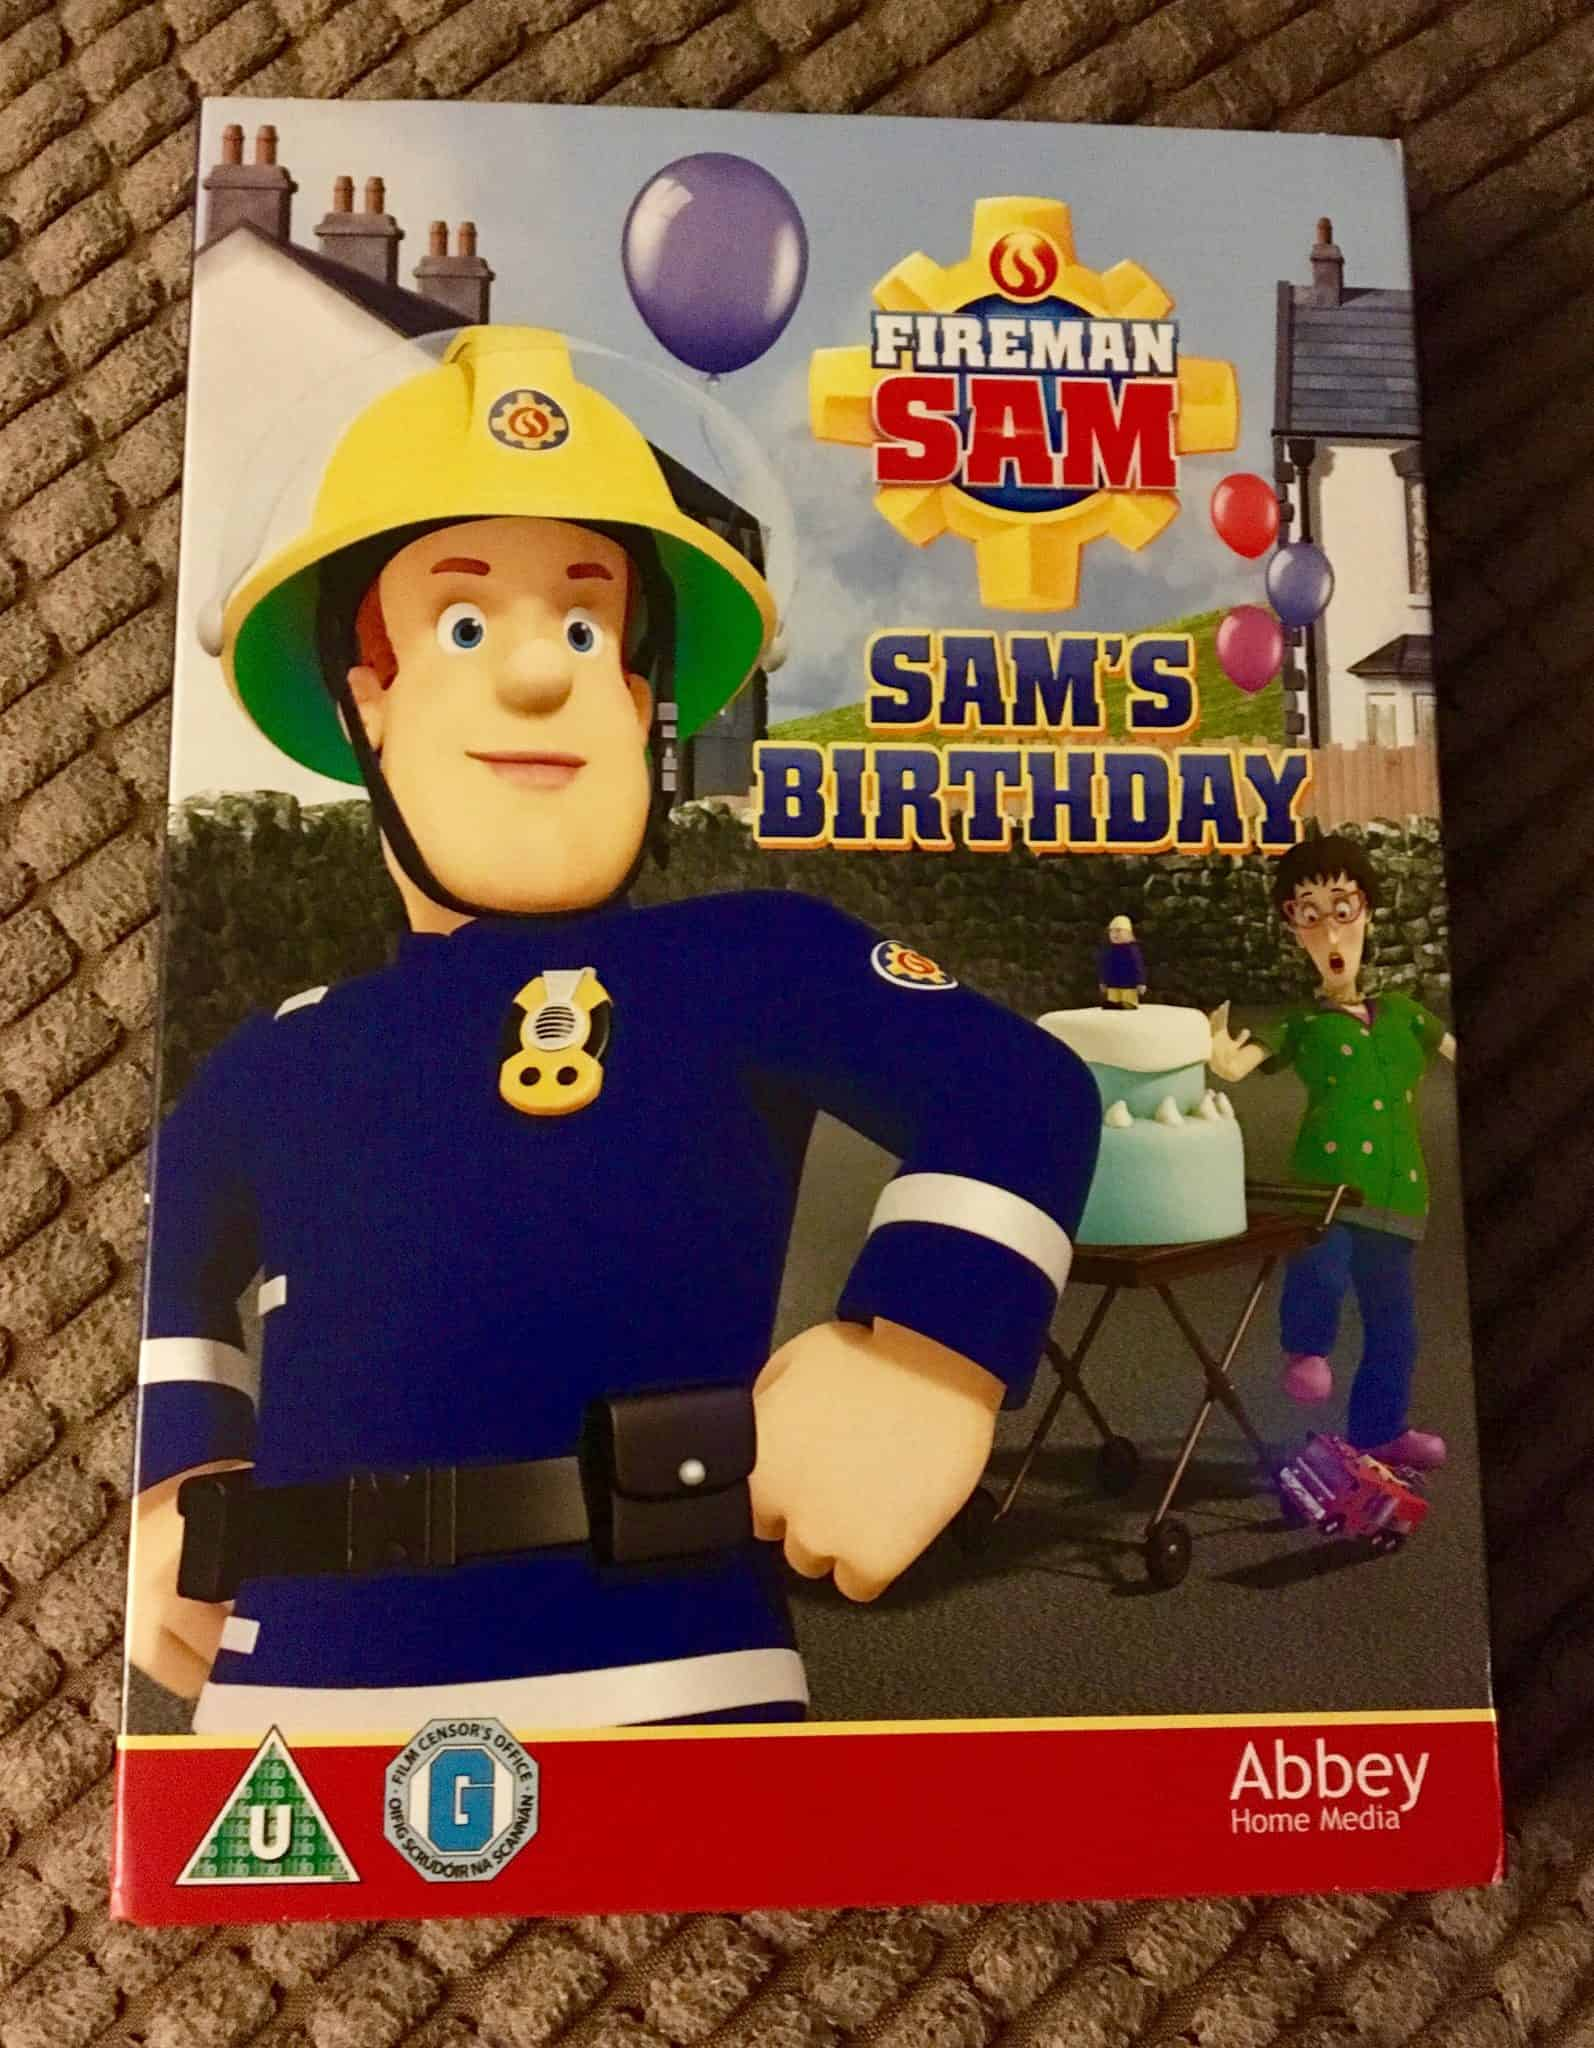 Fireman Sam's 30th Birthday DVD Review